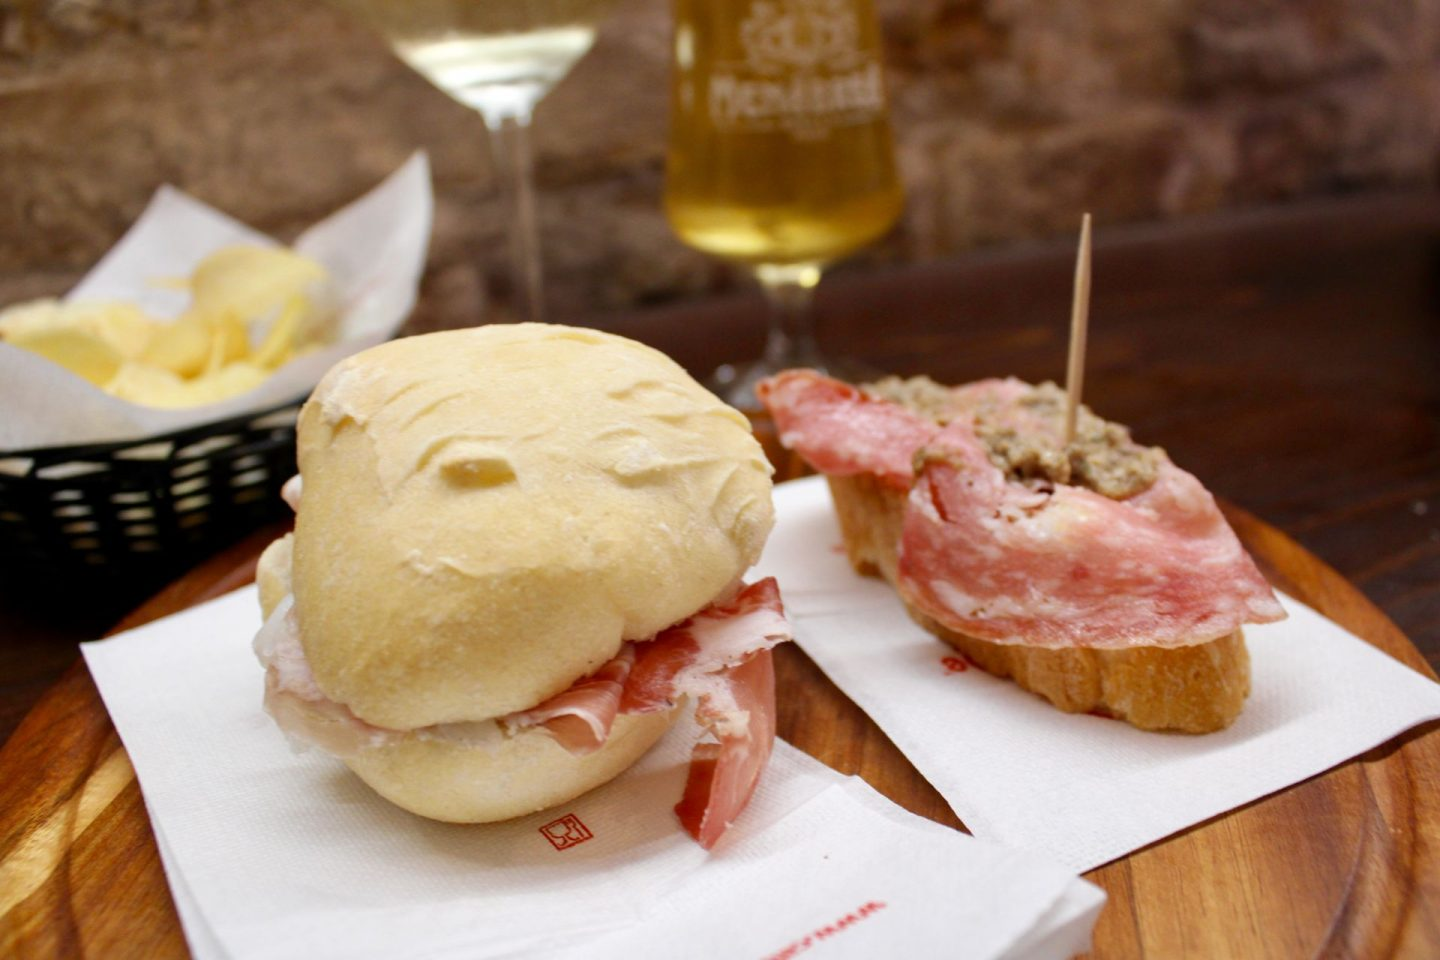 two bruschetta on a table, one is a small ham sandwich and the other is salami on bread topped with mushroom paste